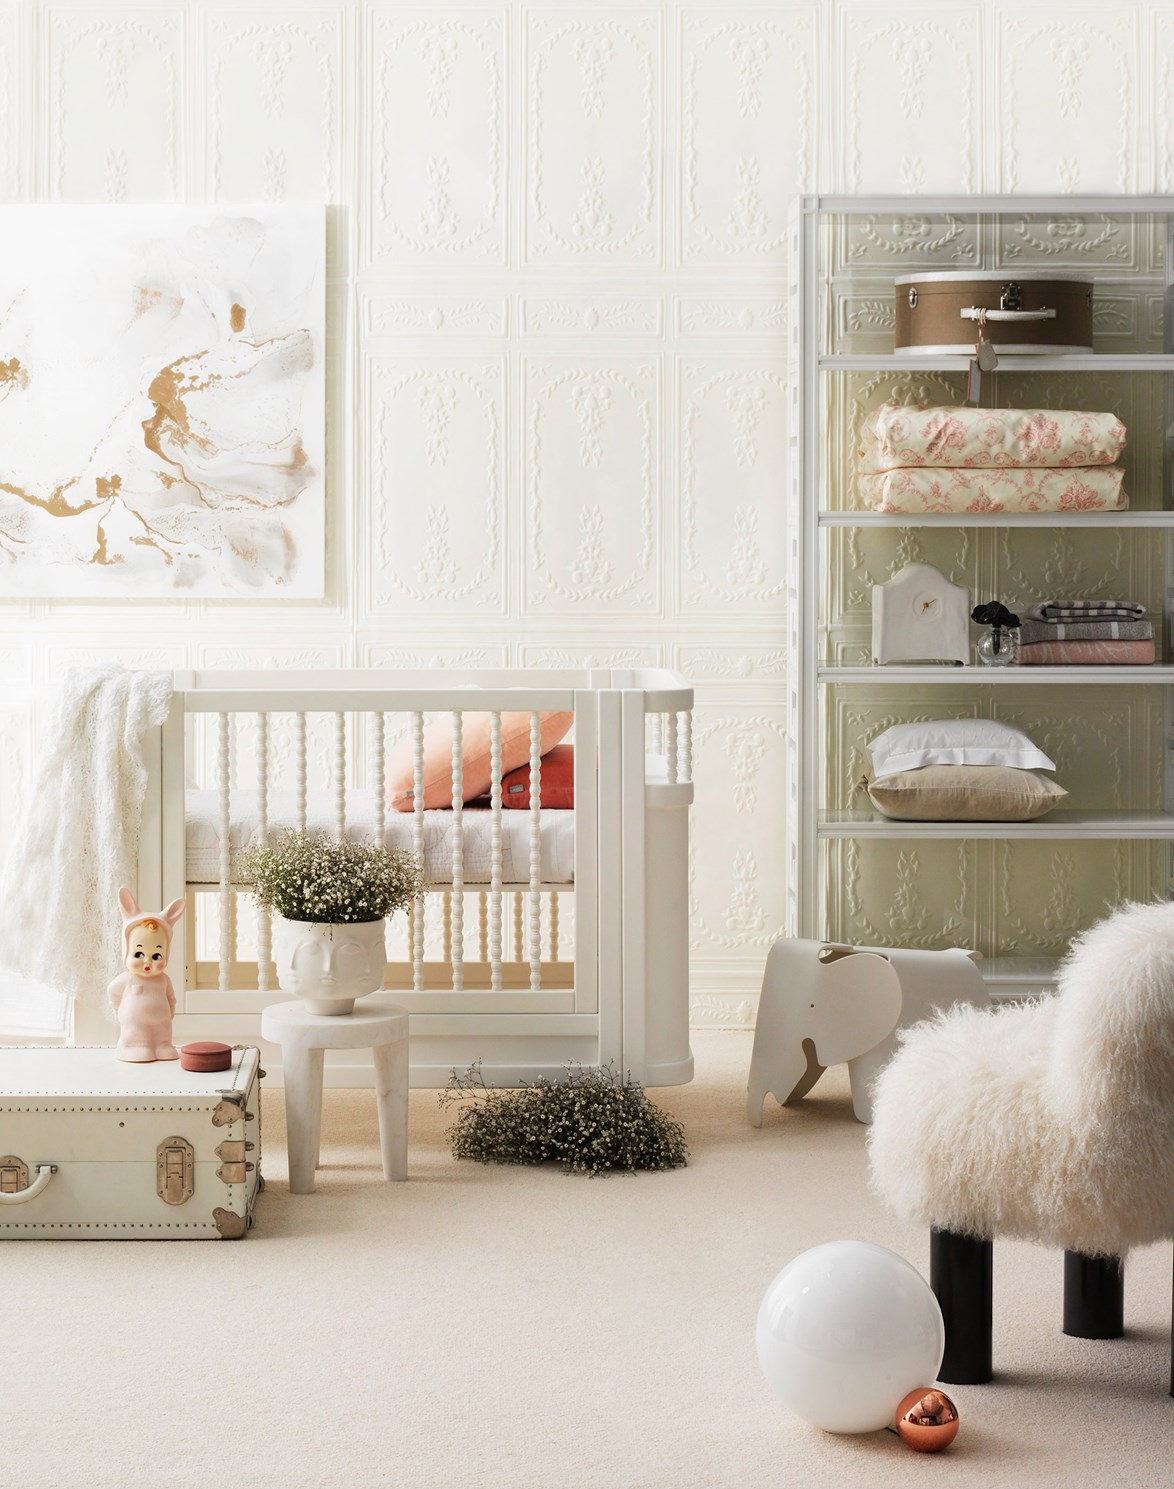 """Adorned with designer furniture items such as a Prada trunk from [Vintage Luggage Company](https://vintageluggage.com.au/ target=""""_blank"""" rel=""""nofollow"""") and a luxurious textiles like a handmade shawl and quilt from [Adrienne & the Misses Bonney](http://www.missesbonneystives.com.au/en/ target=""""_blank"""" rel=""""nofollow""""), this high-end nursery has 'royal' written all over it. *Photo: Edward Urrutia   Styling: Megan Morton, Steve Cordony*"""